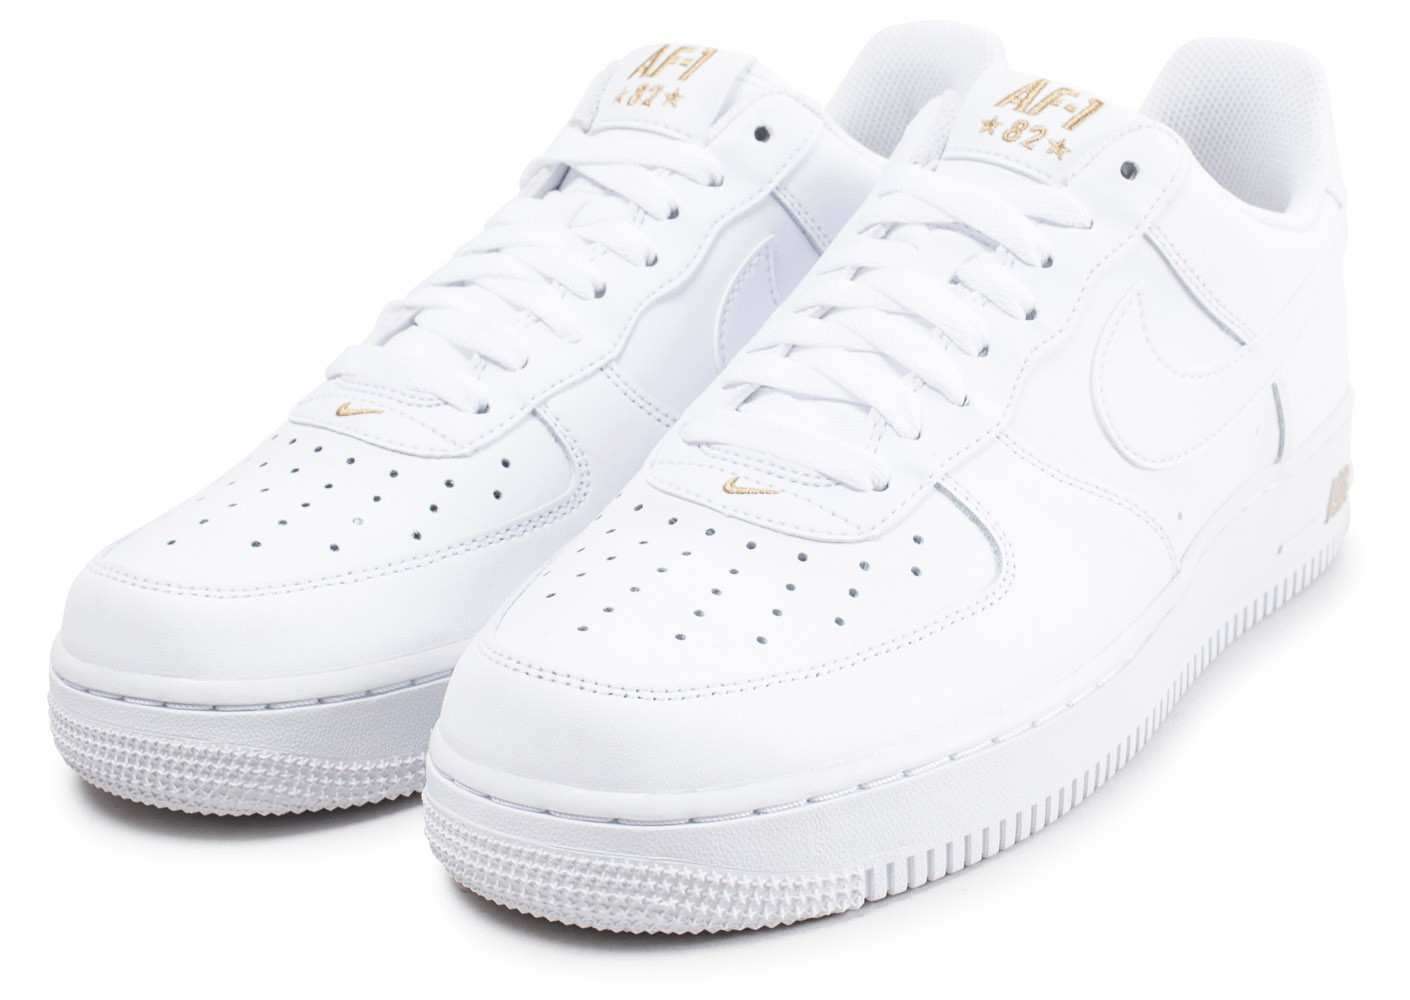 Nouveaux produits 26337 591a2 new zealand nike air force 1 low blanc or 31881 691da